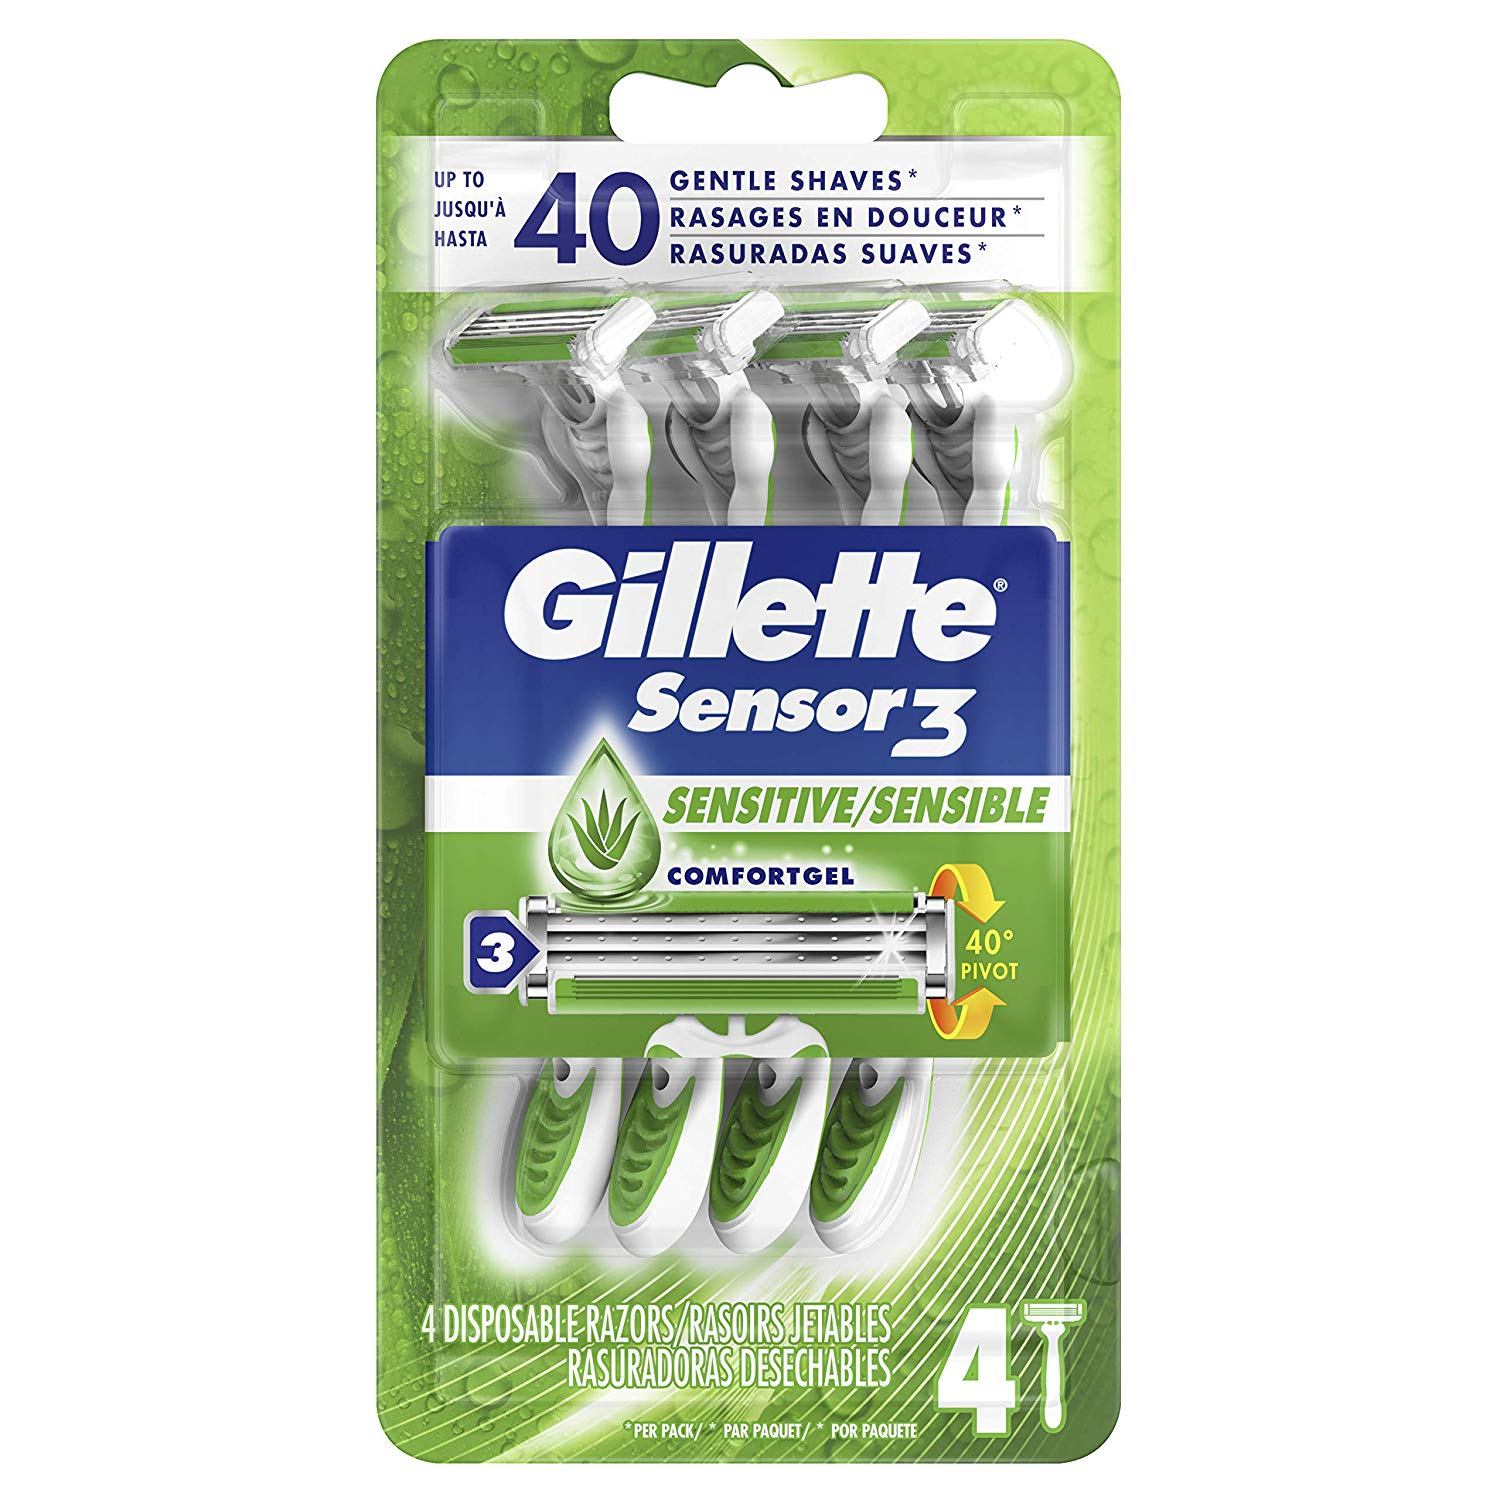 Gillette Sensor3 Sensitive Men's Disposable Razor, 4 Razors Only $2.97!